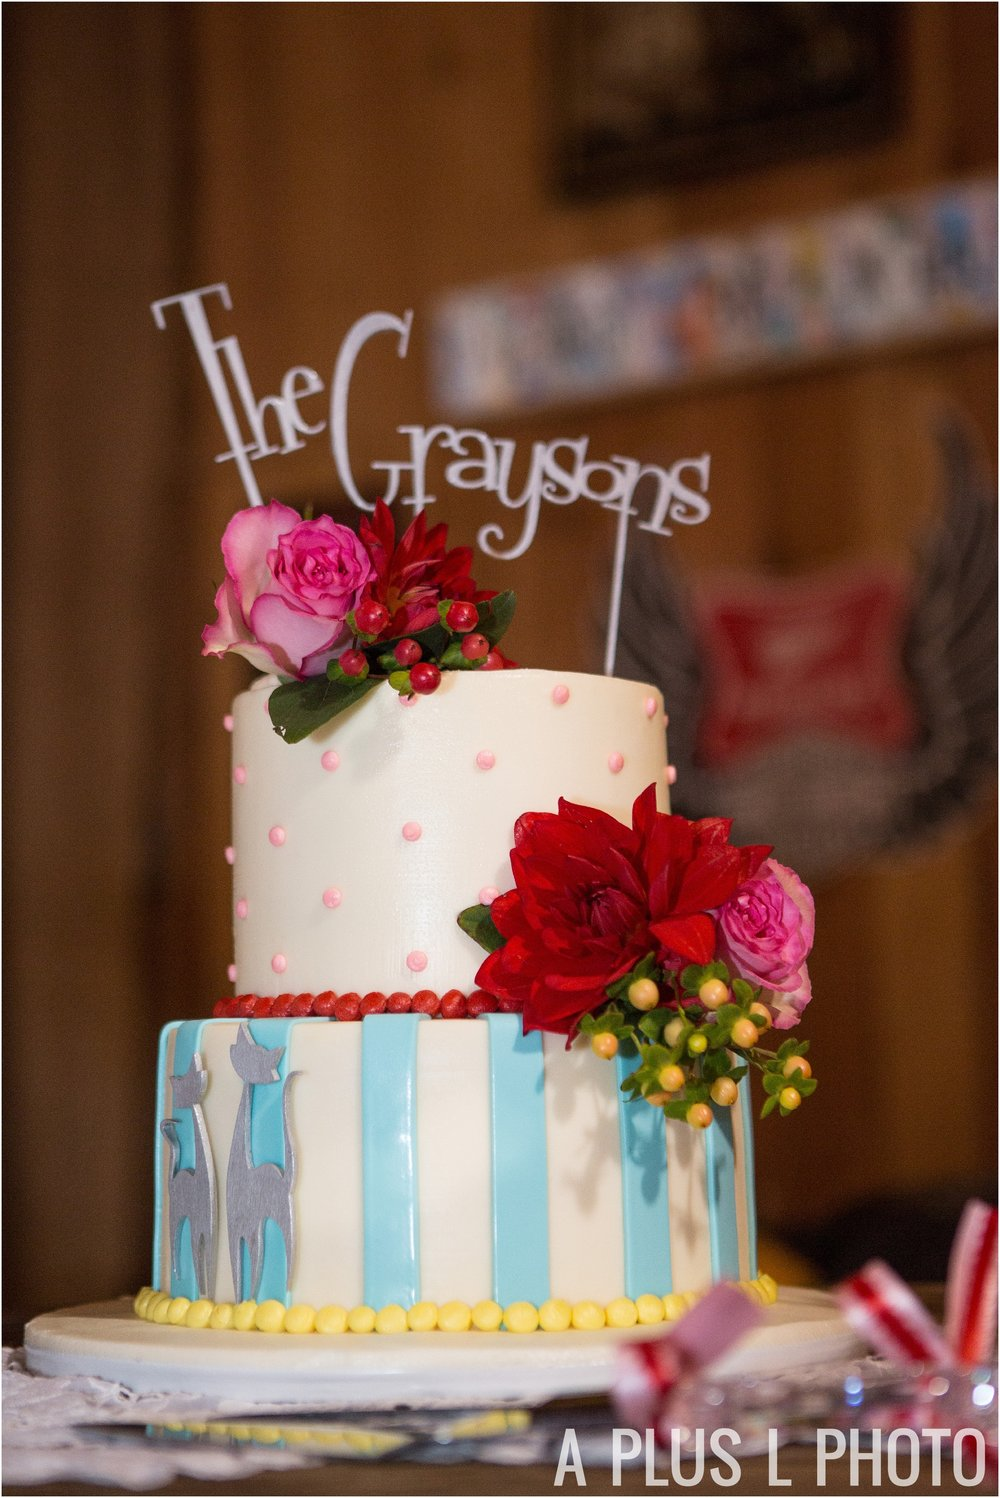 Colorful Rockabilly Wedding - Colorful Wedding Cake with Adorable Cake Topper - Heart of Rock - A Plus L Photo